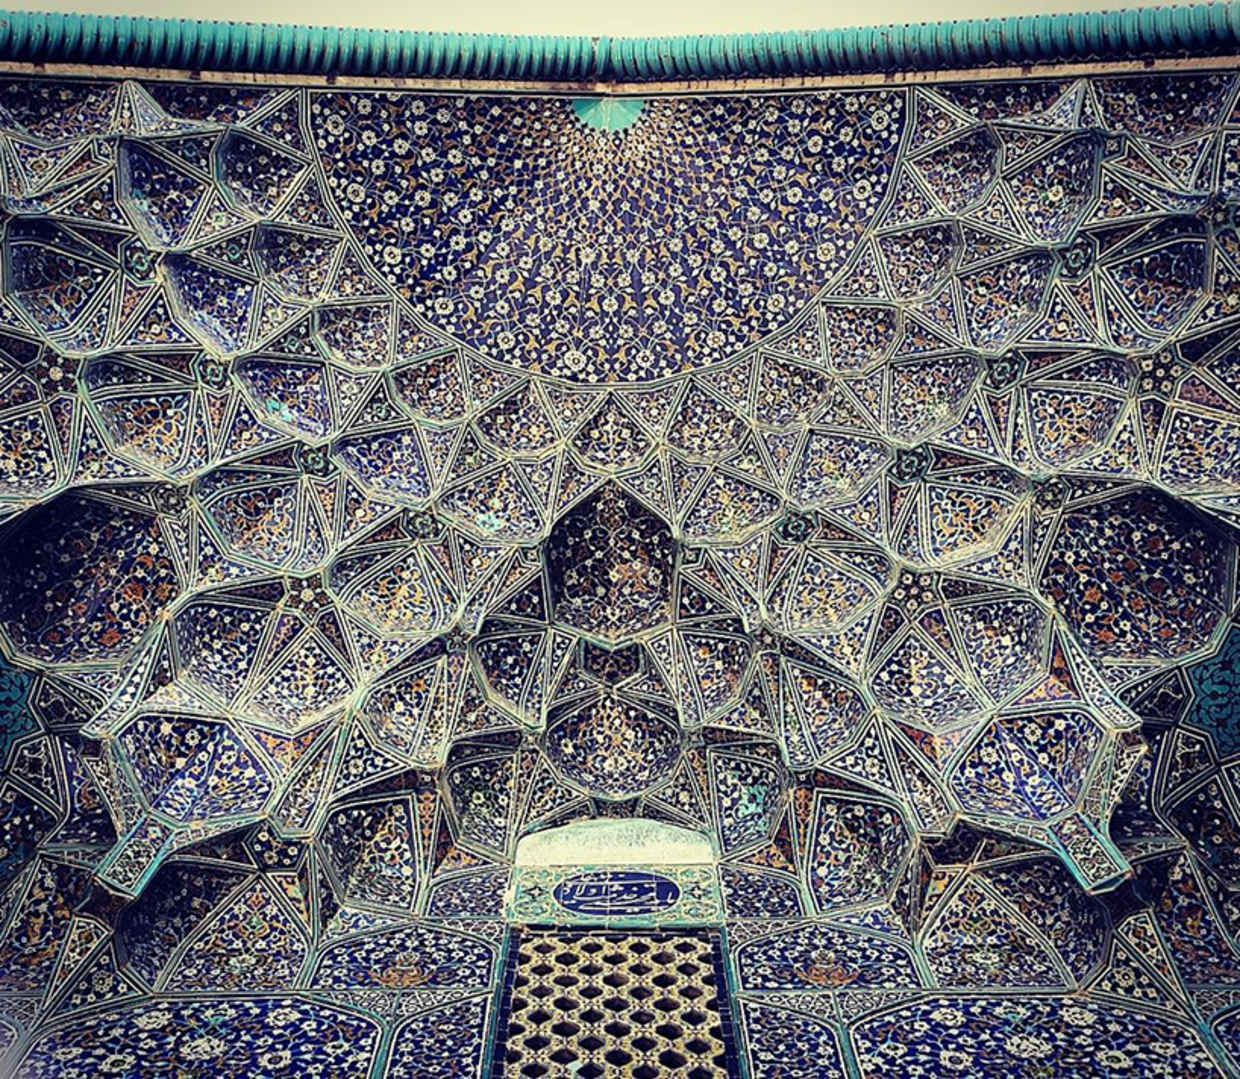 The Mesmerising Architecture Of Iranian Mosques Iranian Mosque - The mesmerising architecture of iranian mosques